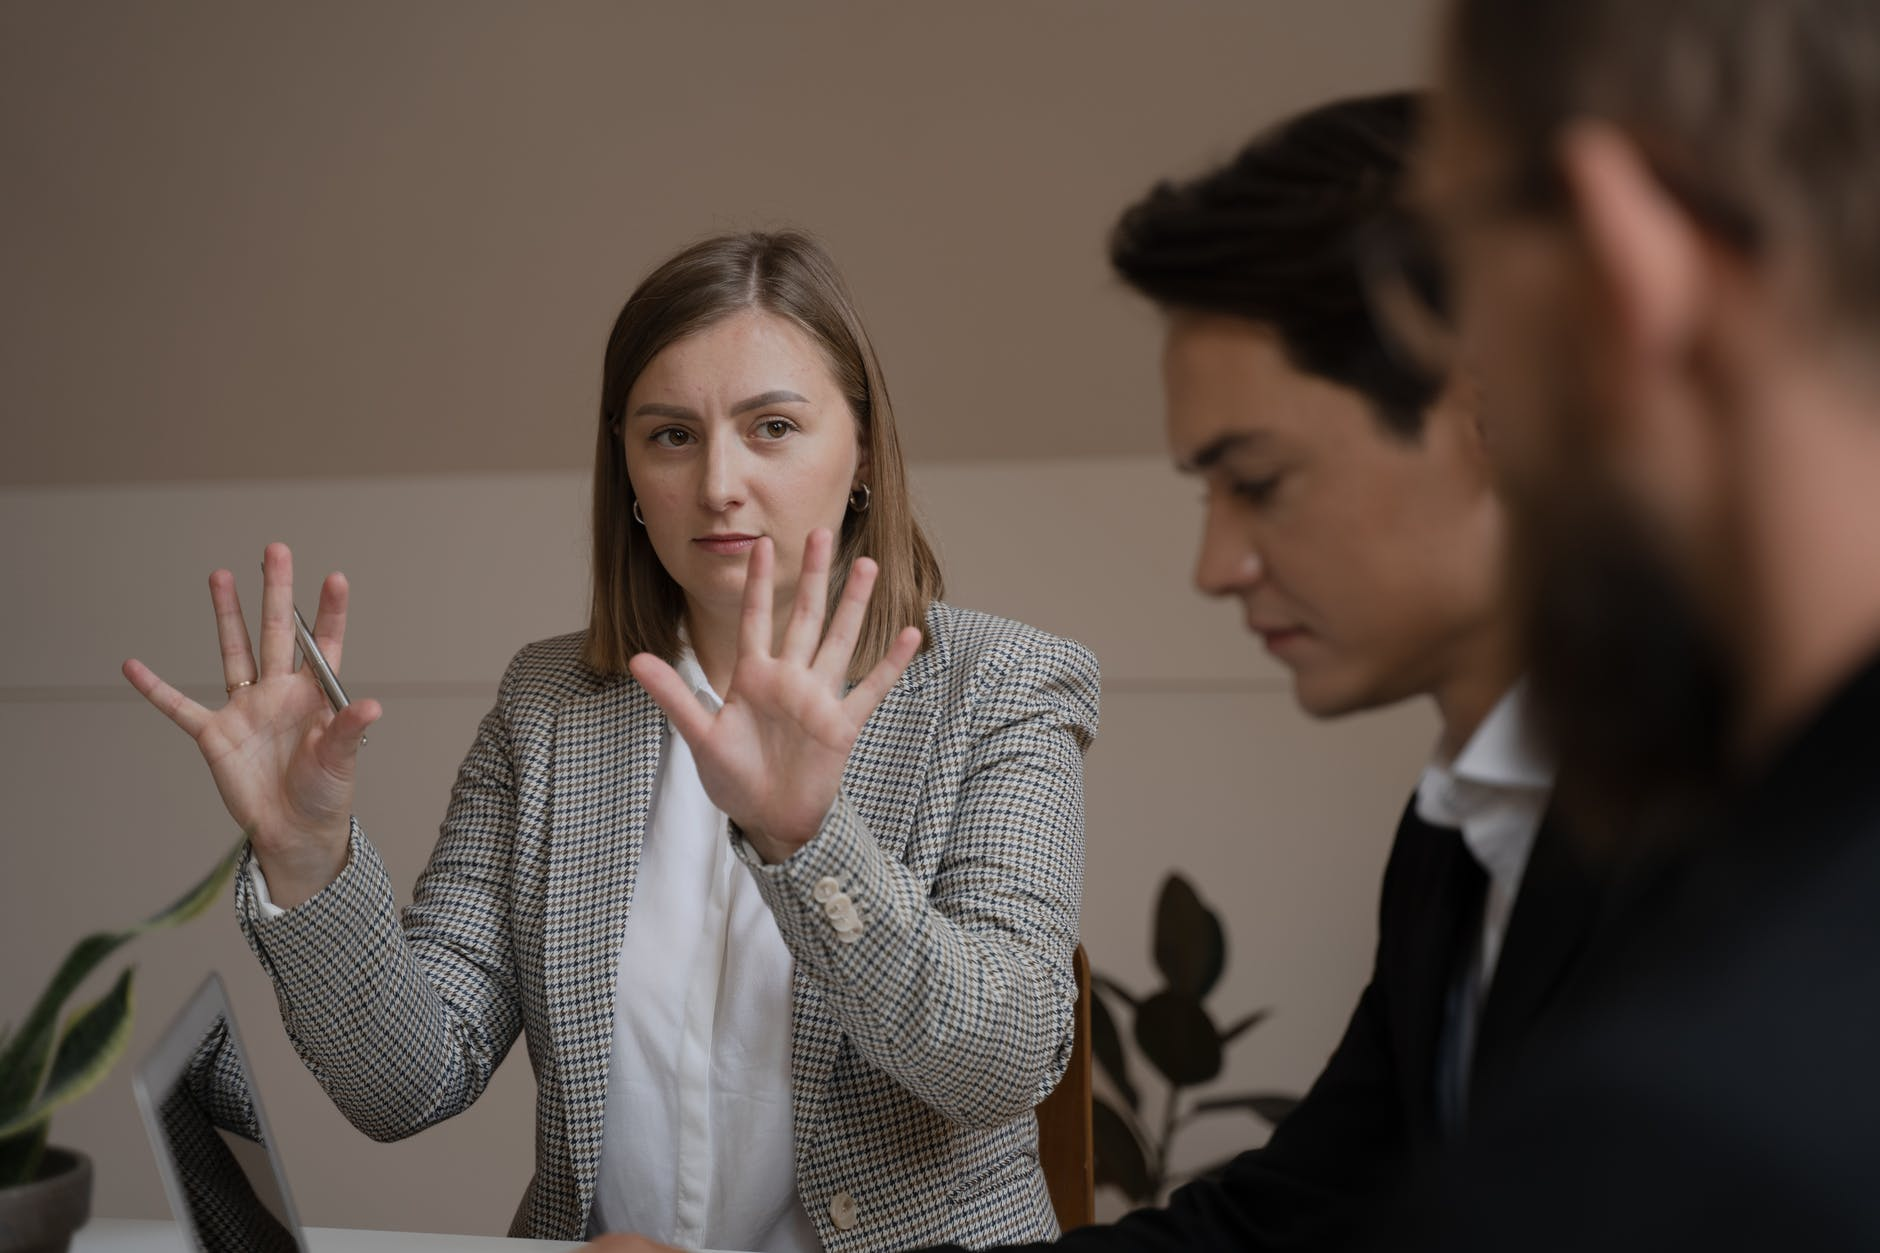 Conflict Resolution - Knowledge, skills and behaviours for managing conflict